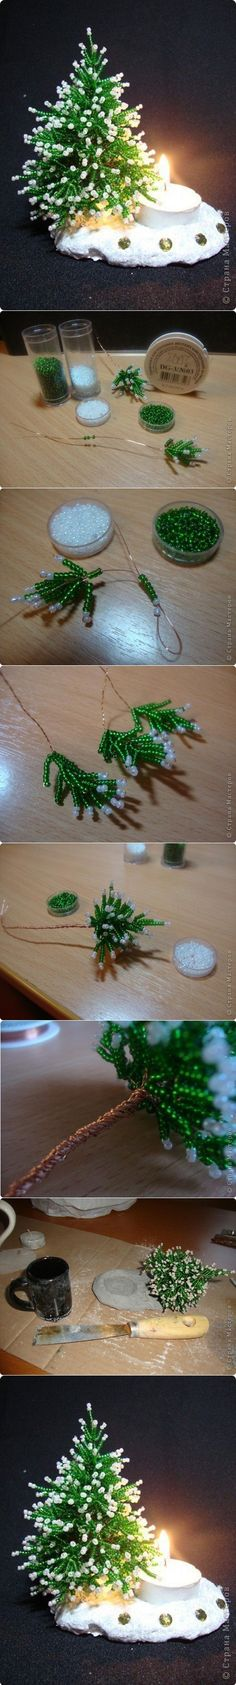 Herringbone Beads Miniature Christmas Tree